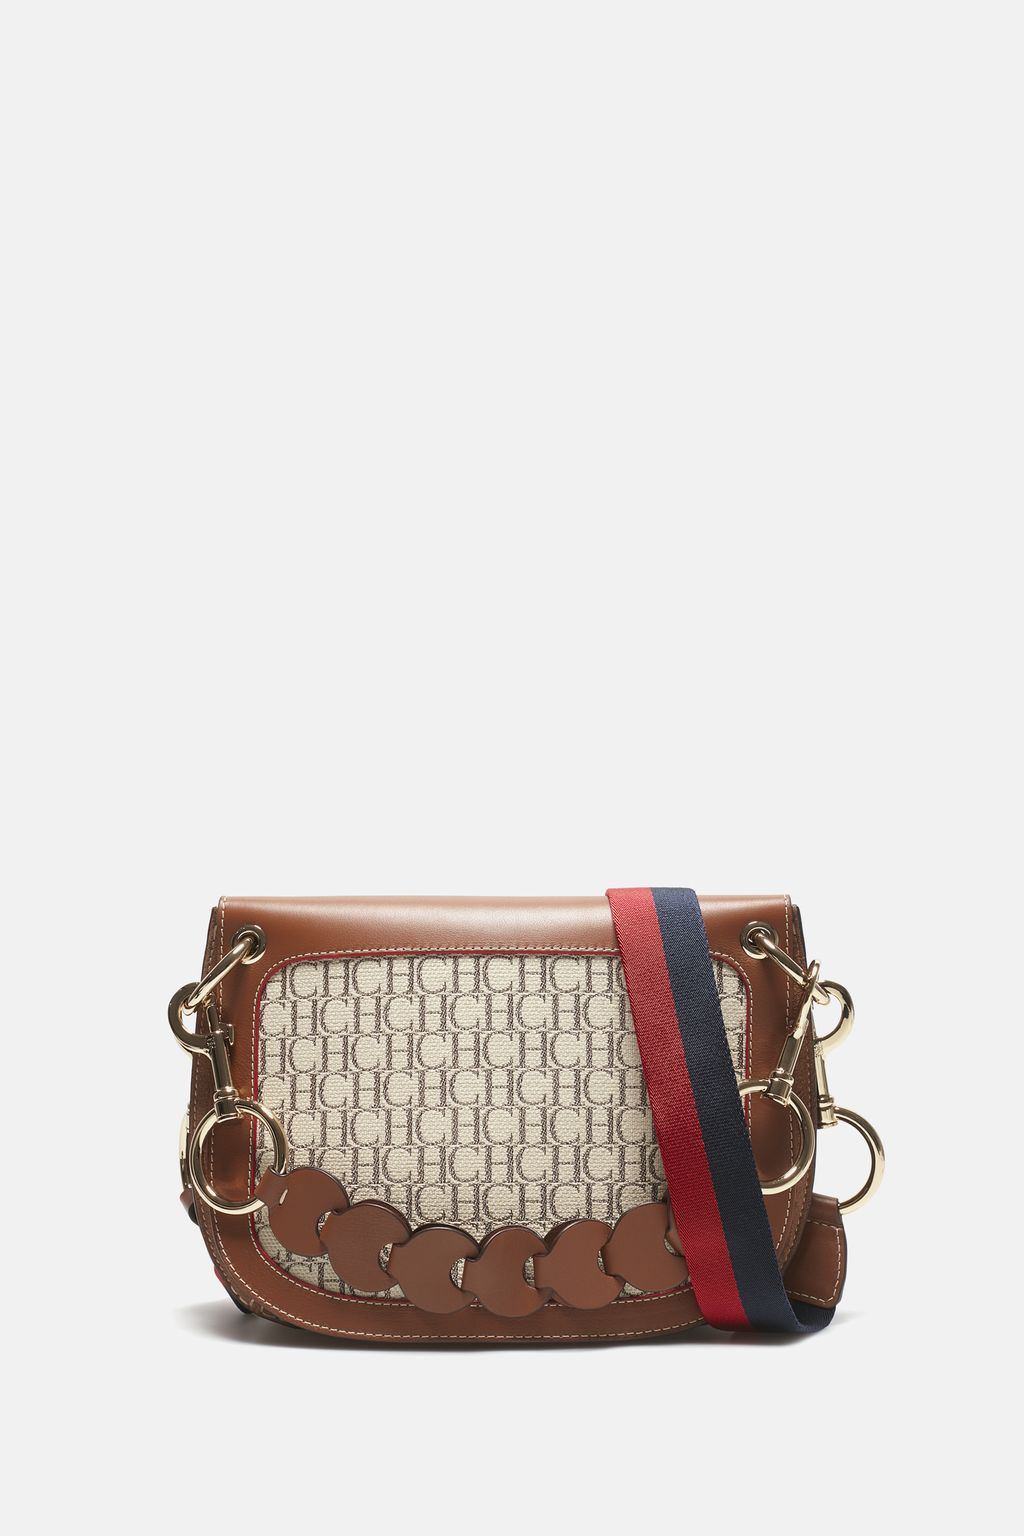 Castañuela 3 | Medium shoulder bag